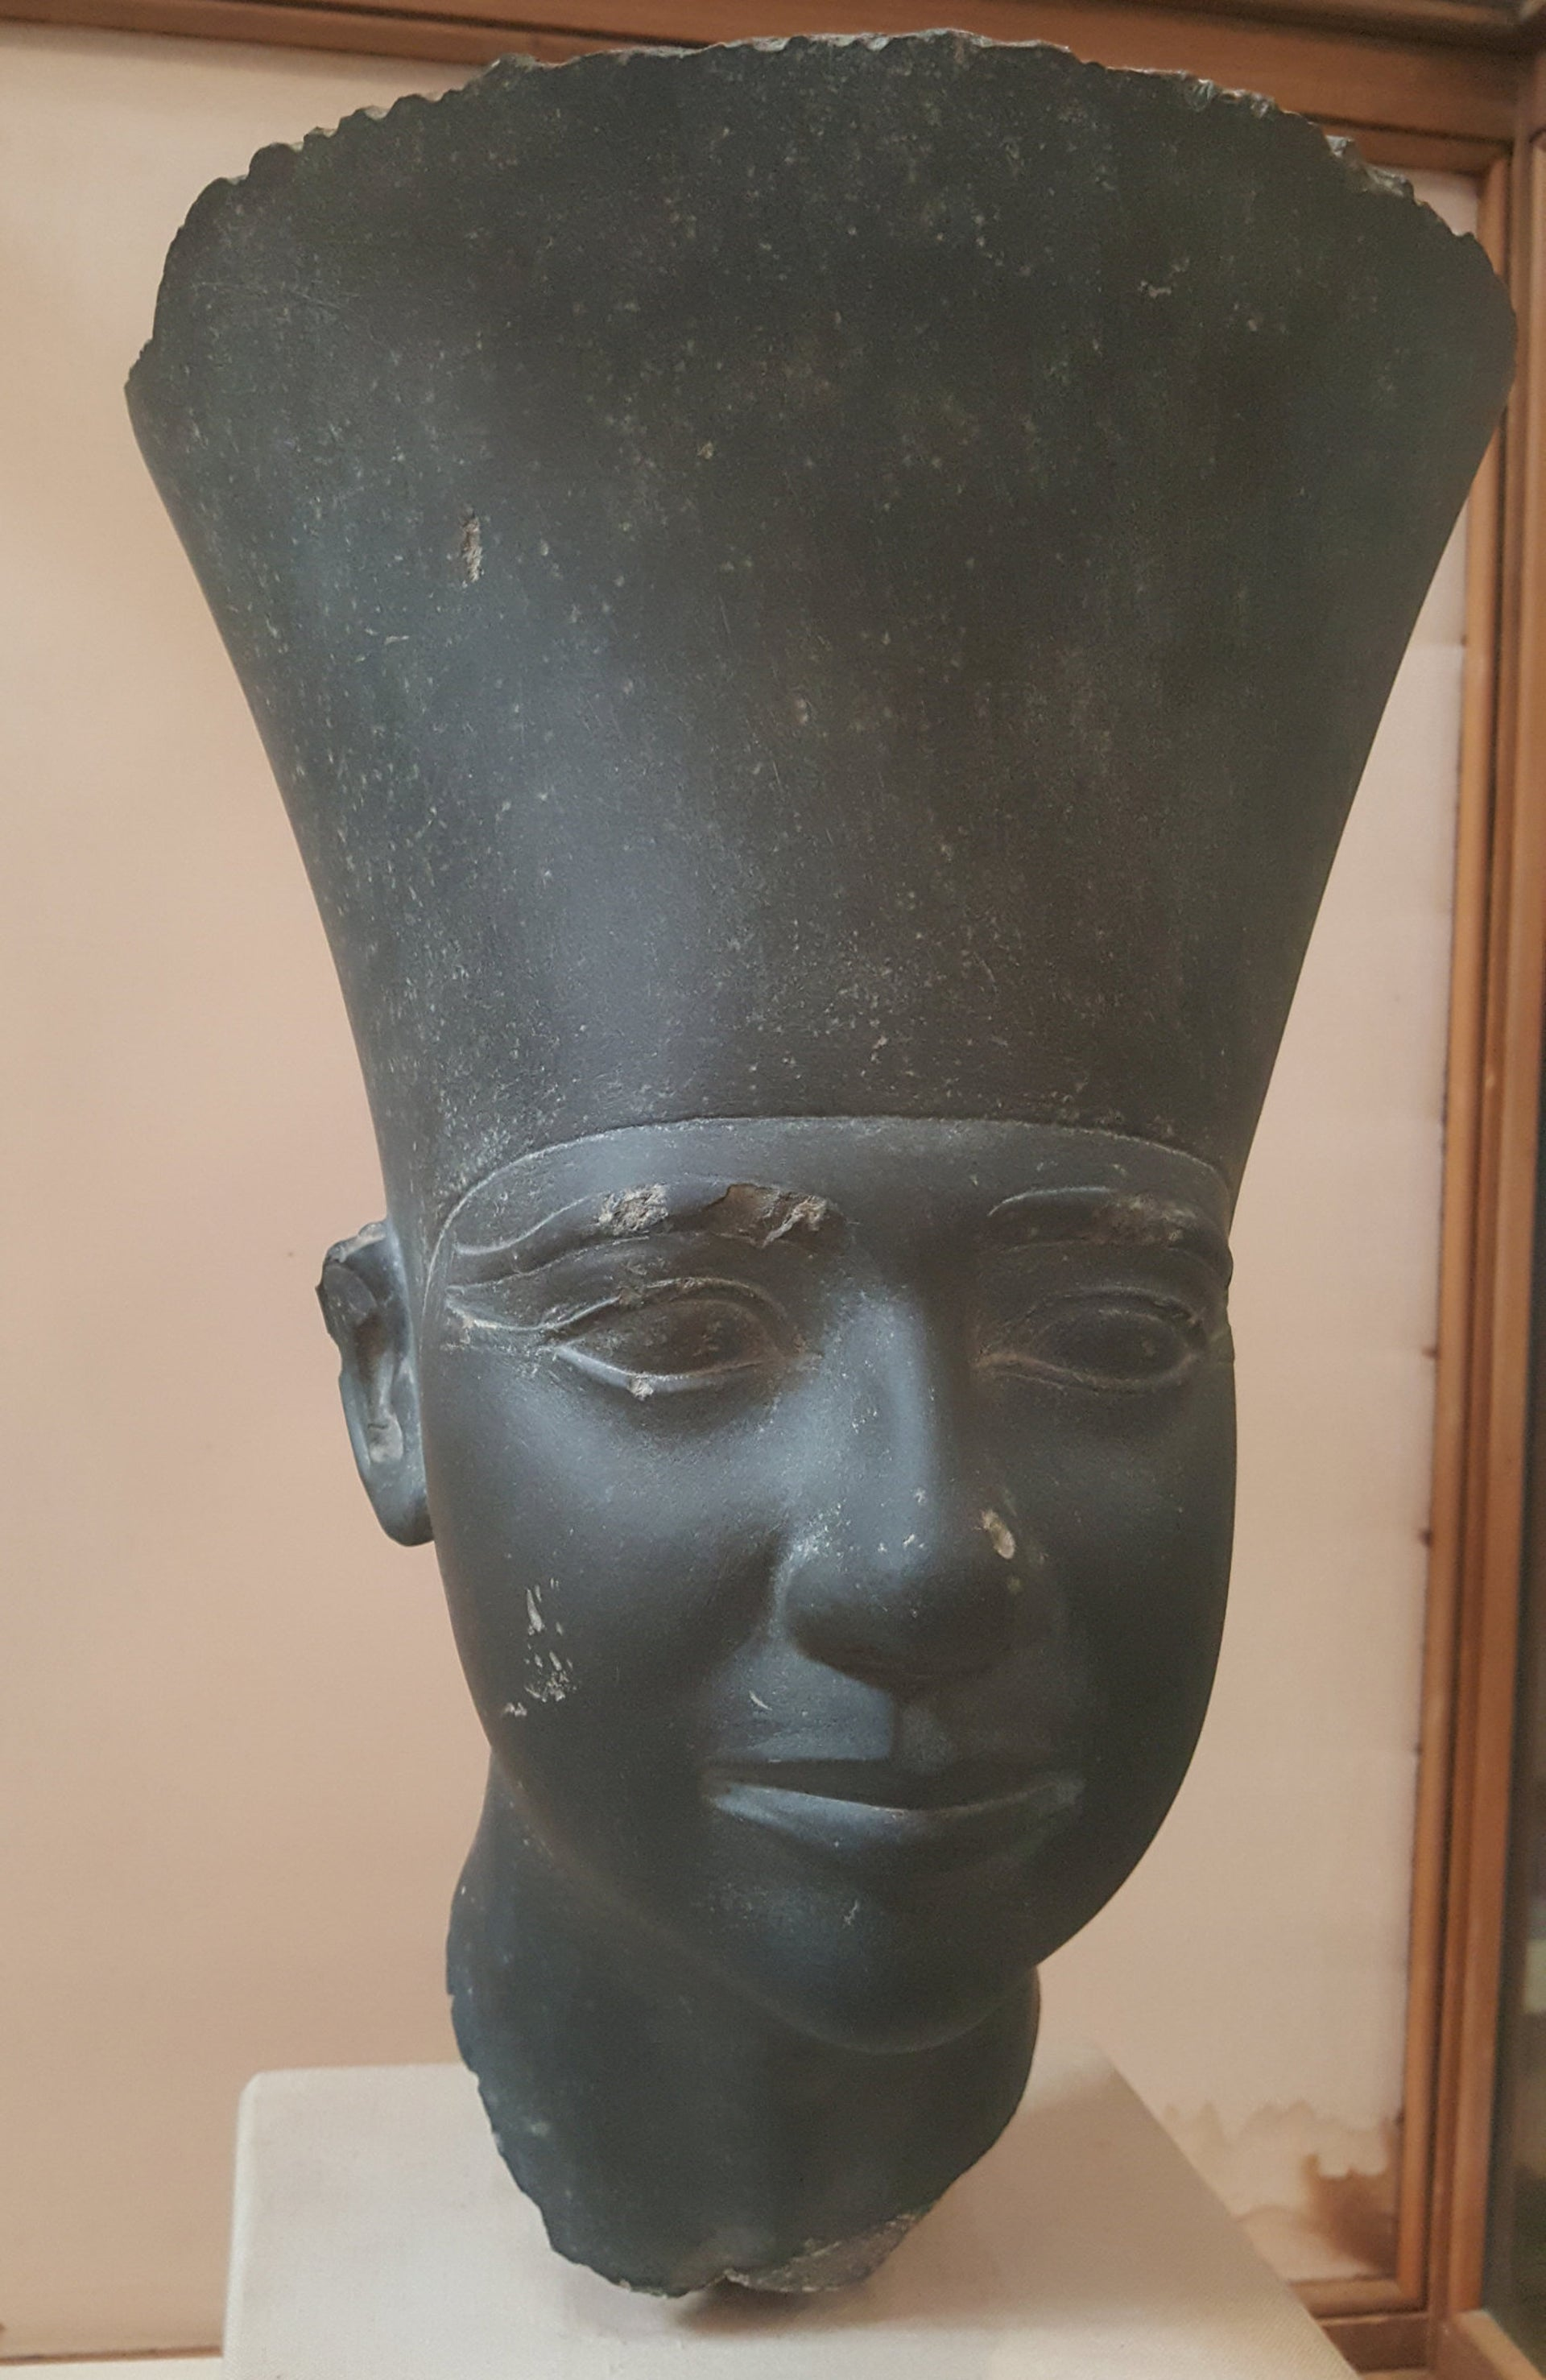 Head of Fifth Dynasty founder Userkaf, who ruled in the early 25th century B.C.E., recovered from his temple to Ra; Egyptian Museum